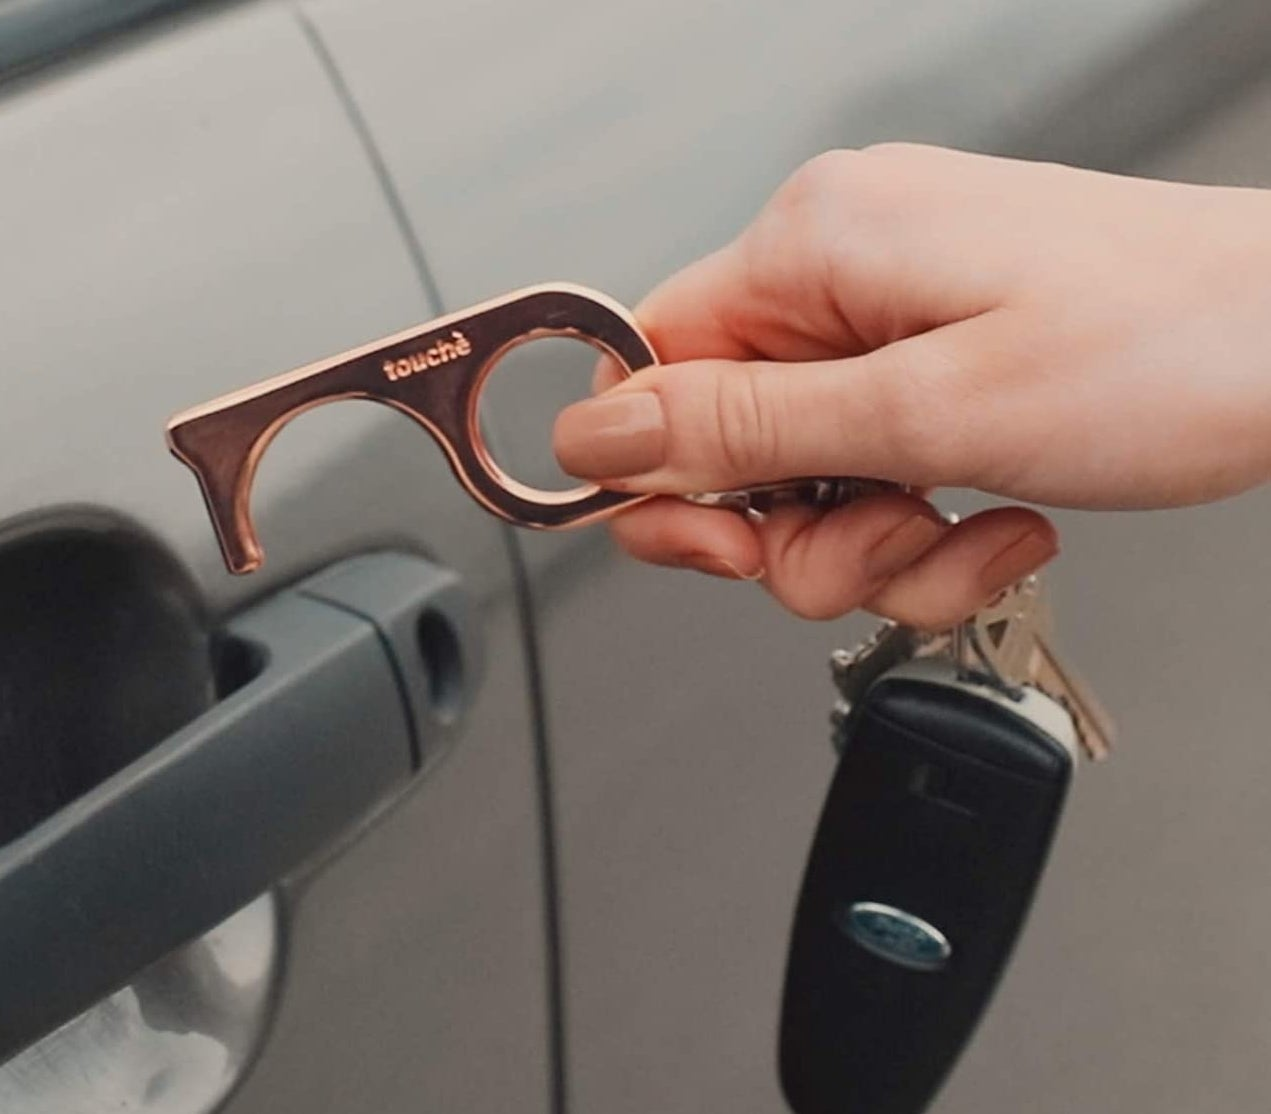 A person using the tool to open their care door